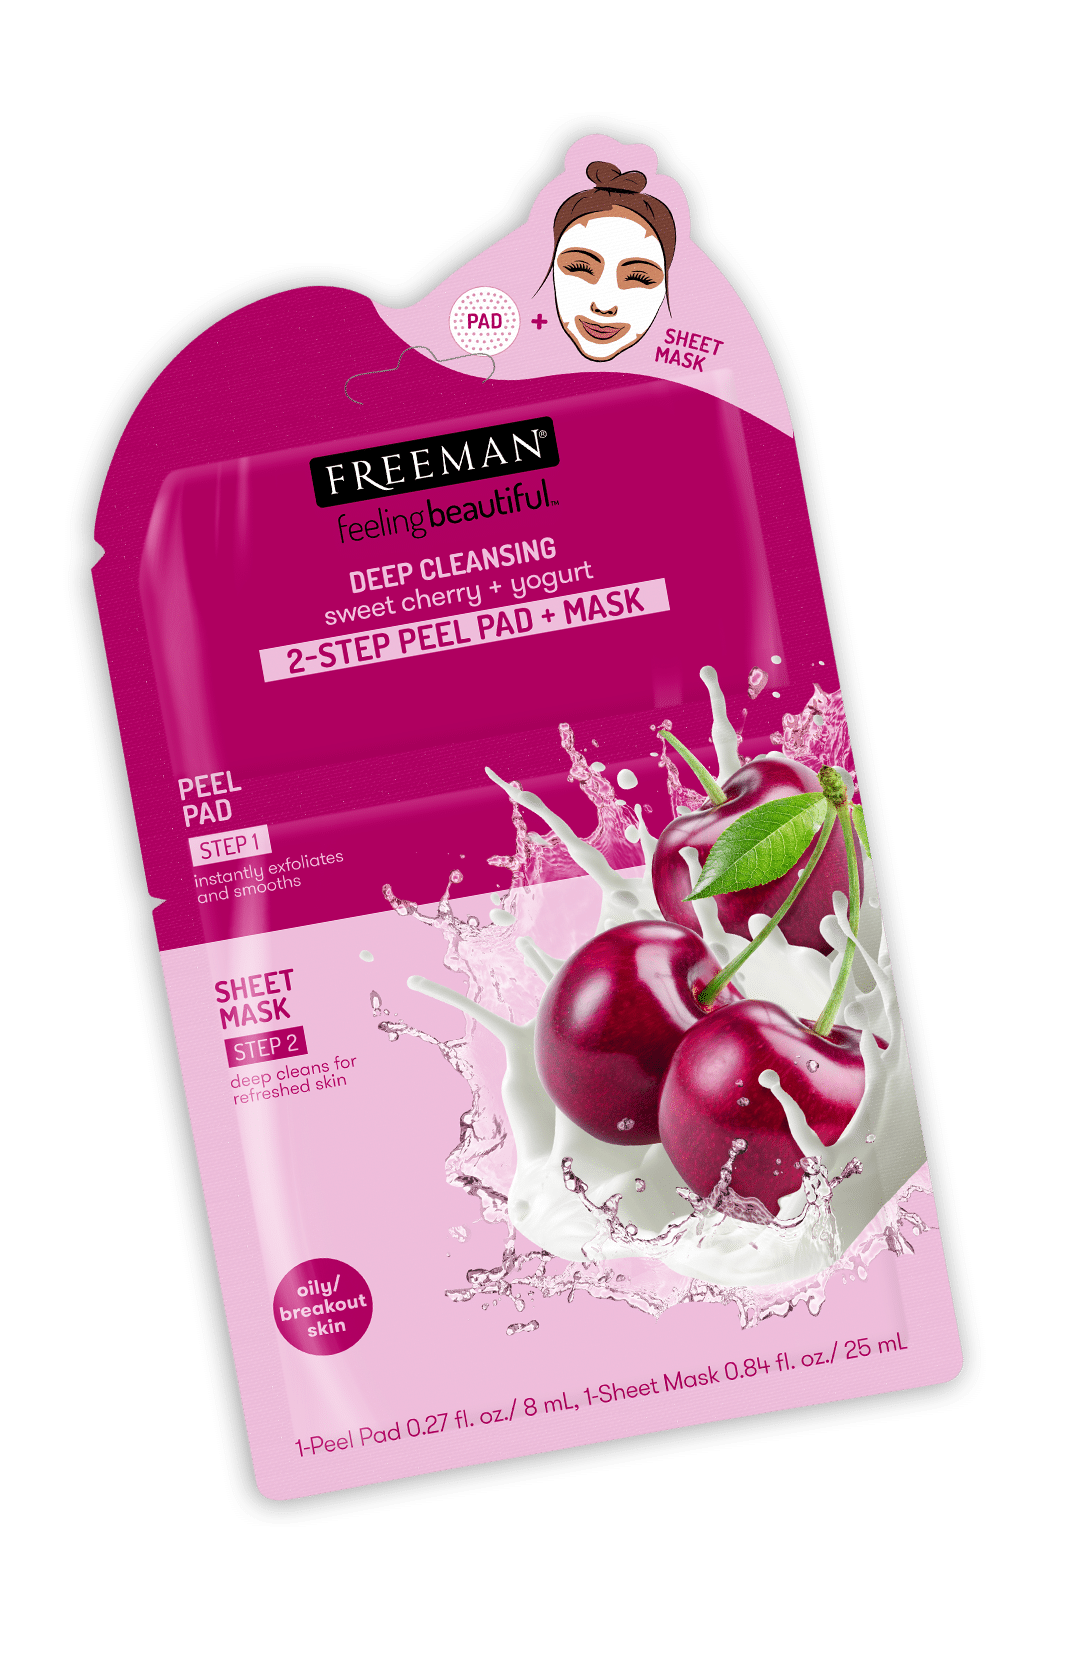 DEEP CLEANSING sweet cherry + yogurt 2-STEP PEEL PAD + MASK